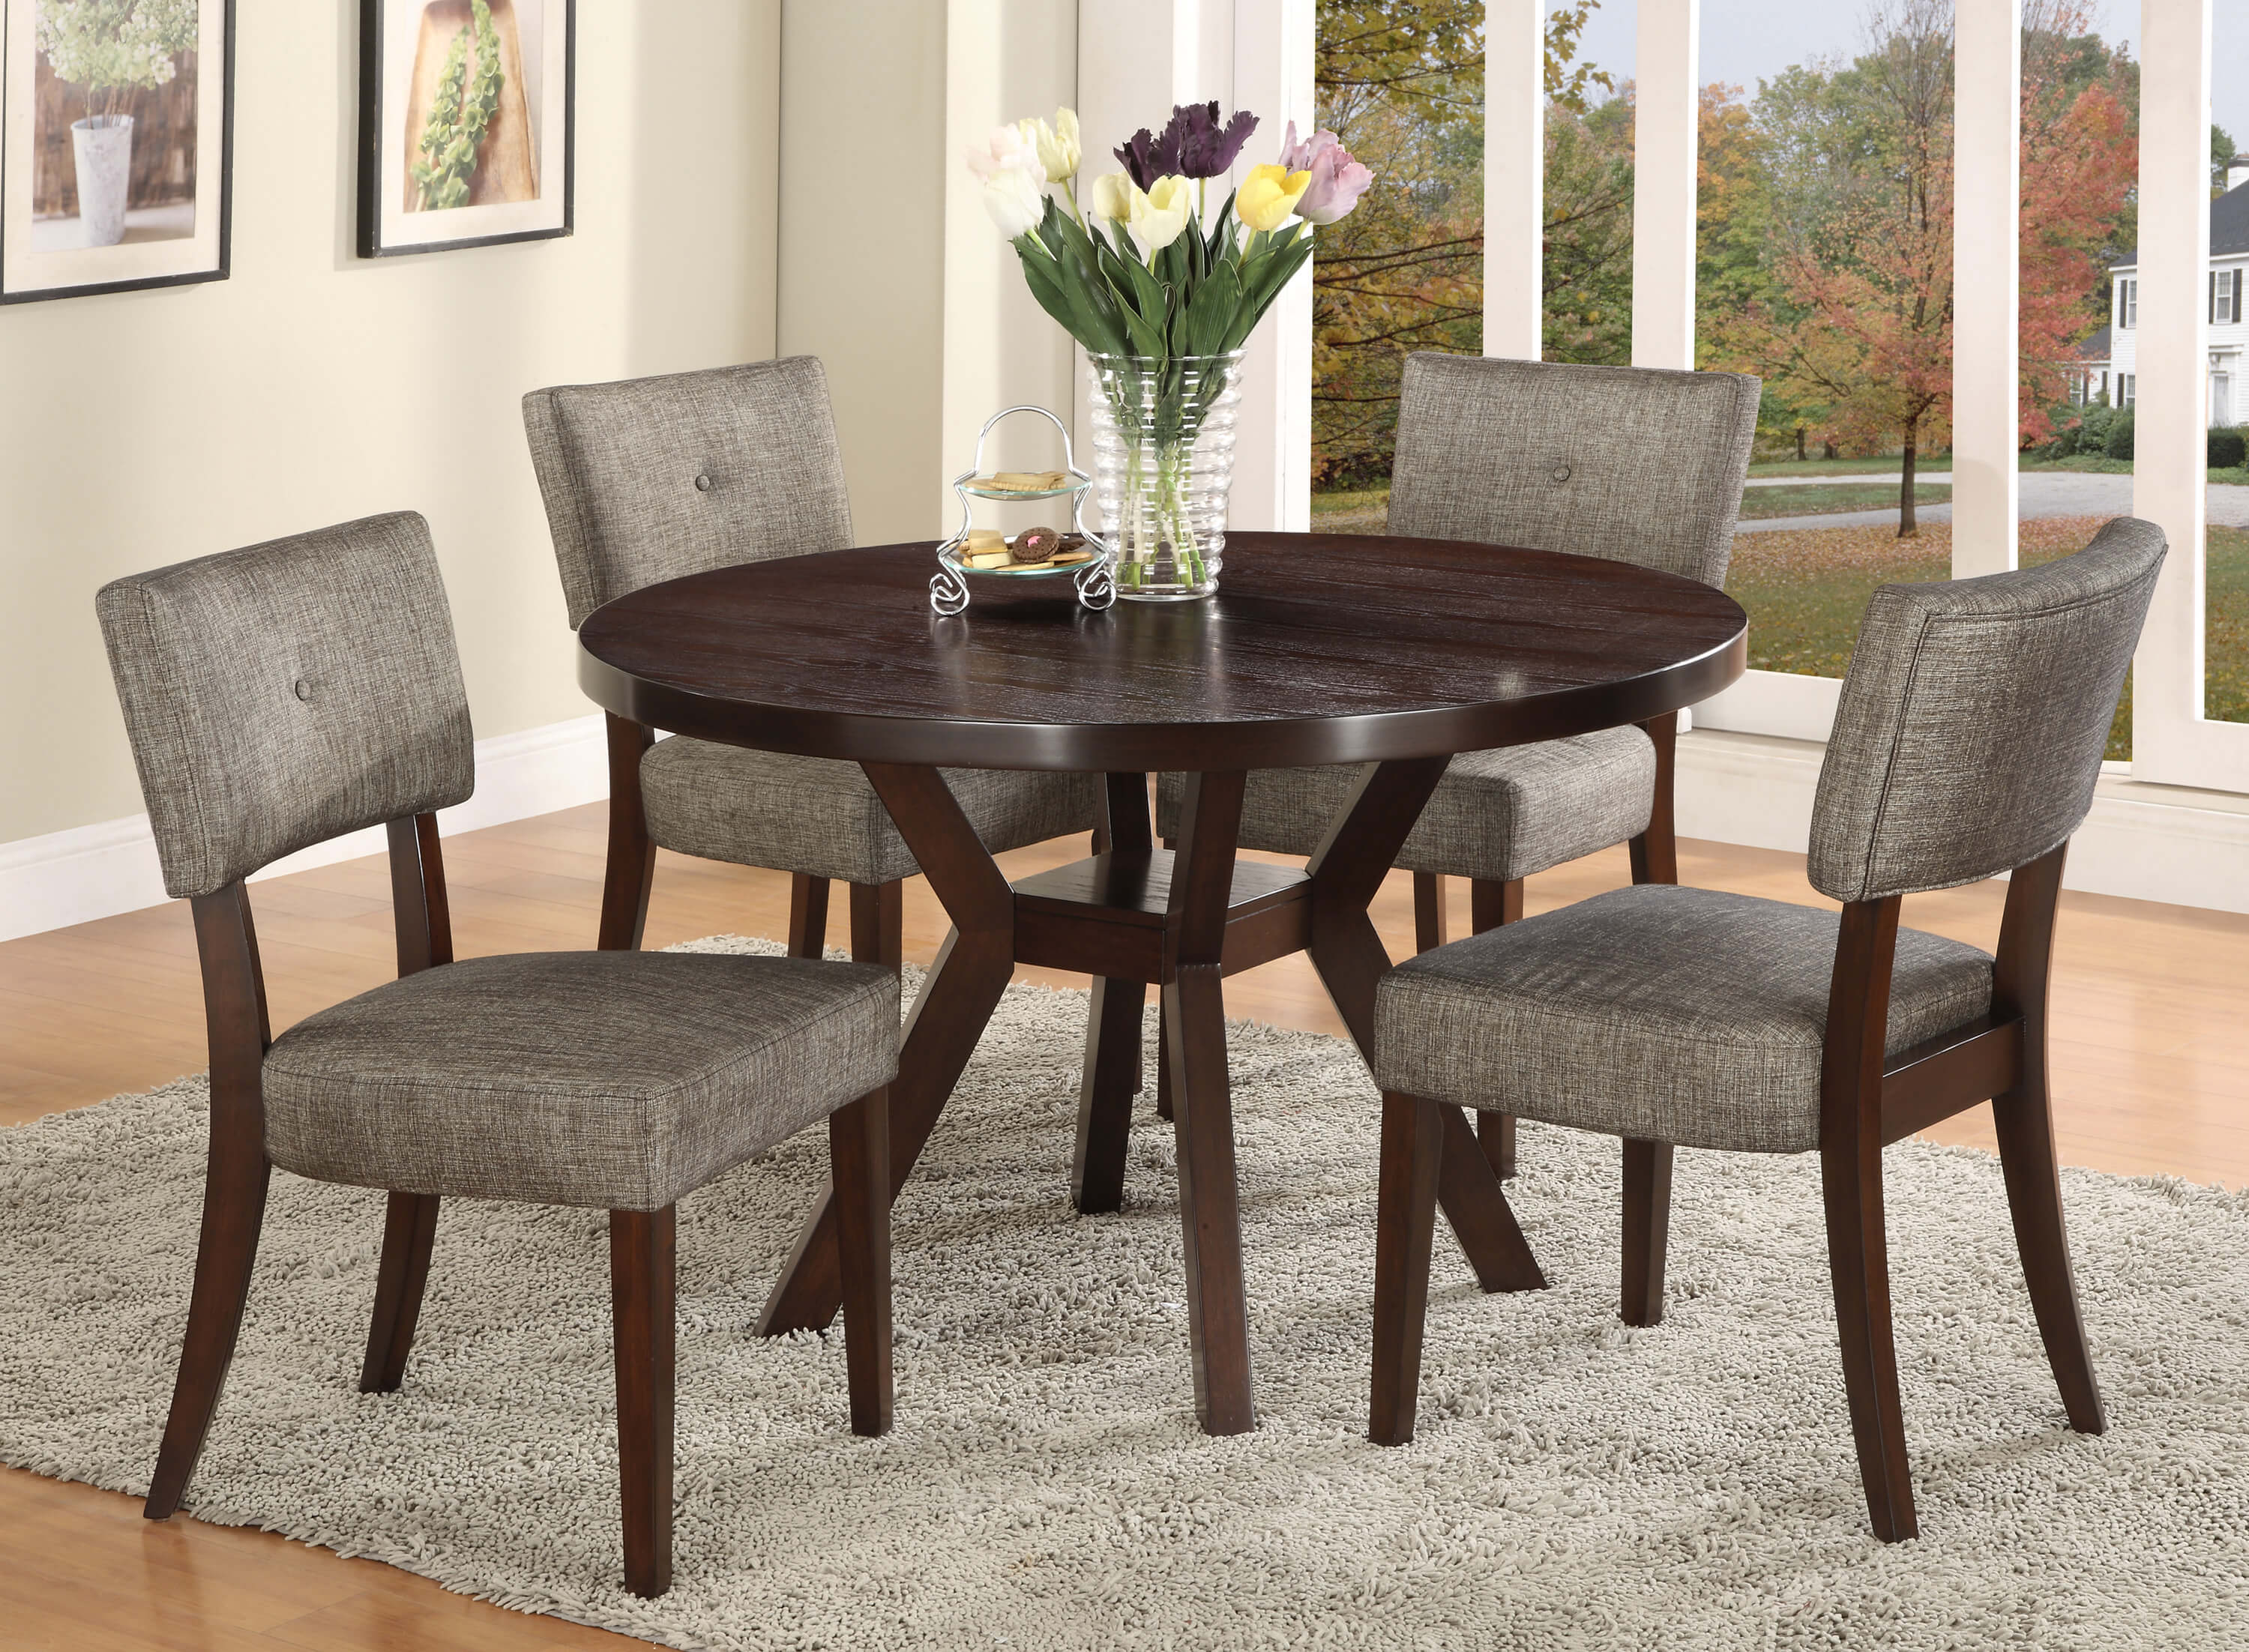 Kayla 5 Pc Dining Room Set Urban Furniture Outlet